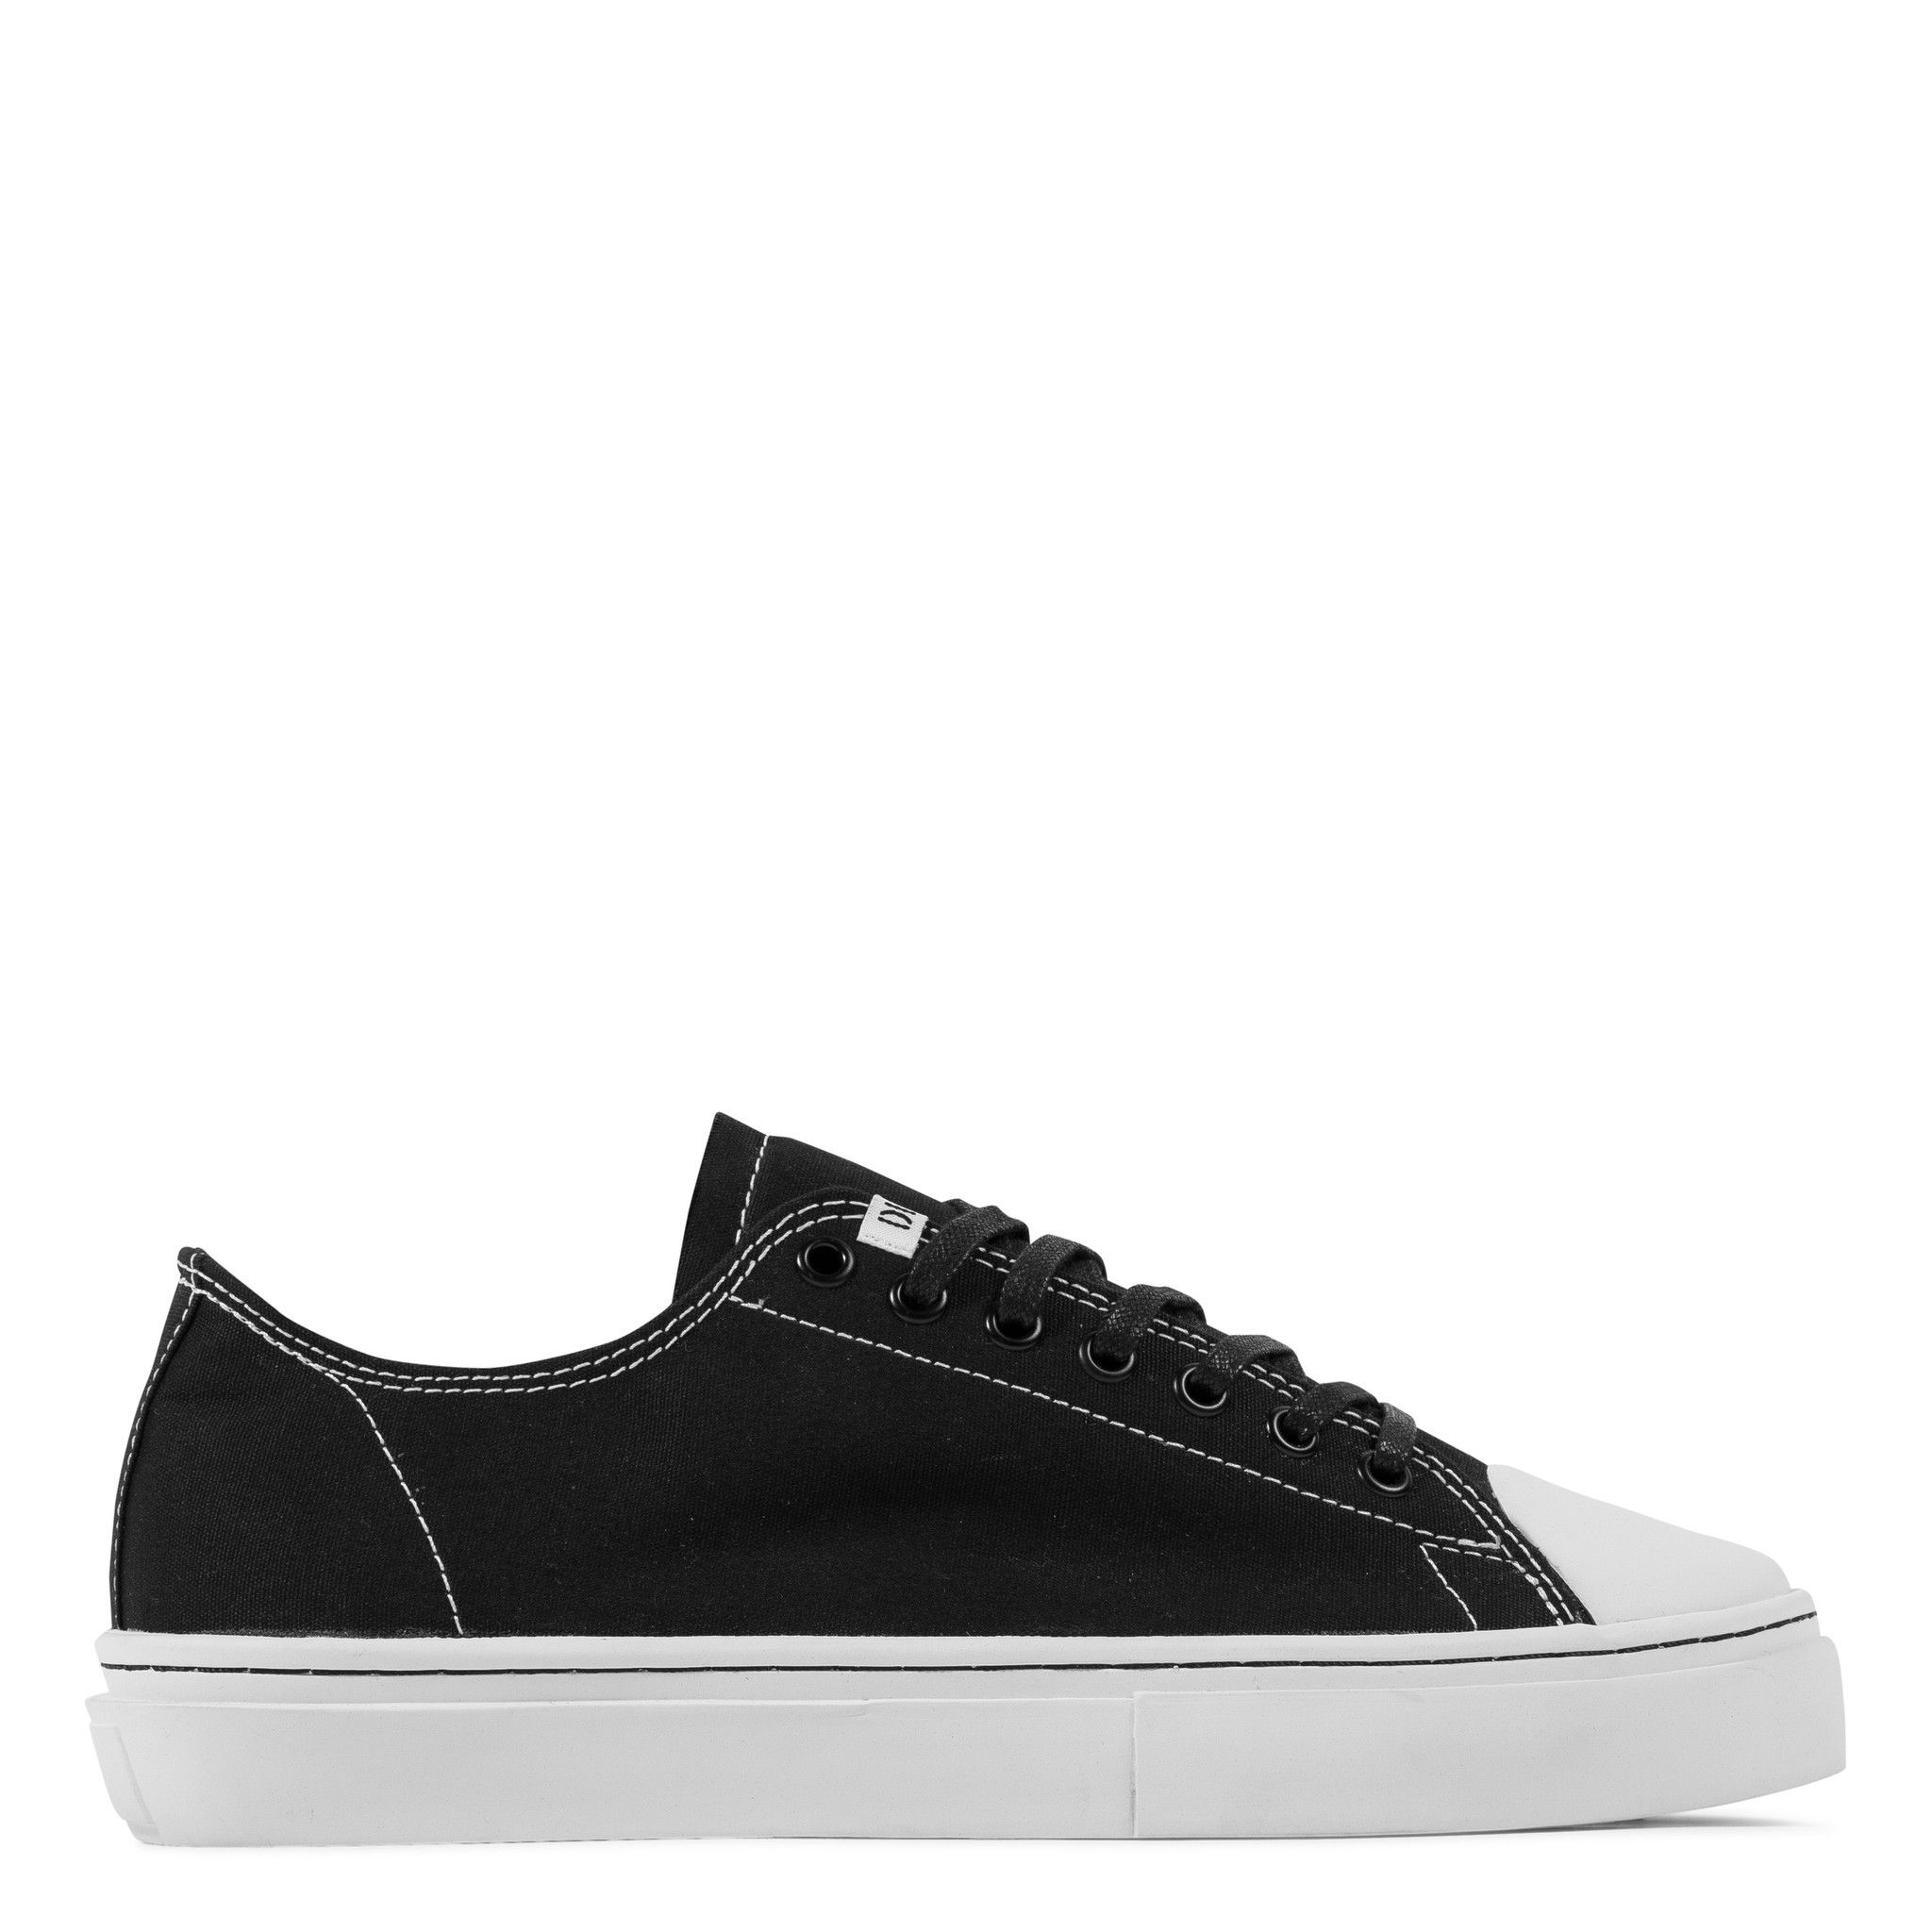 CLEAR WEATHER SIERKS LOW in Black. #clearweather #shoes #all